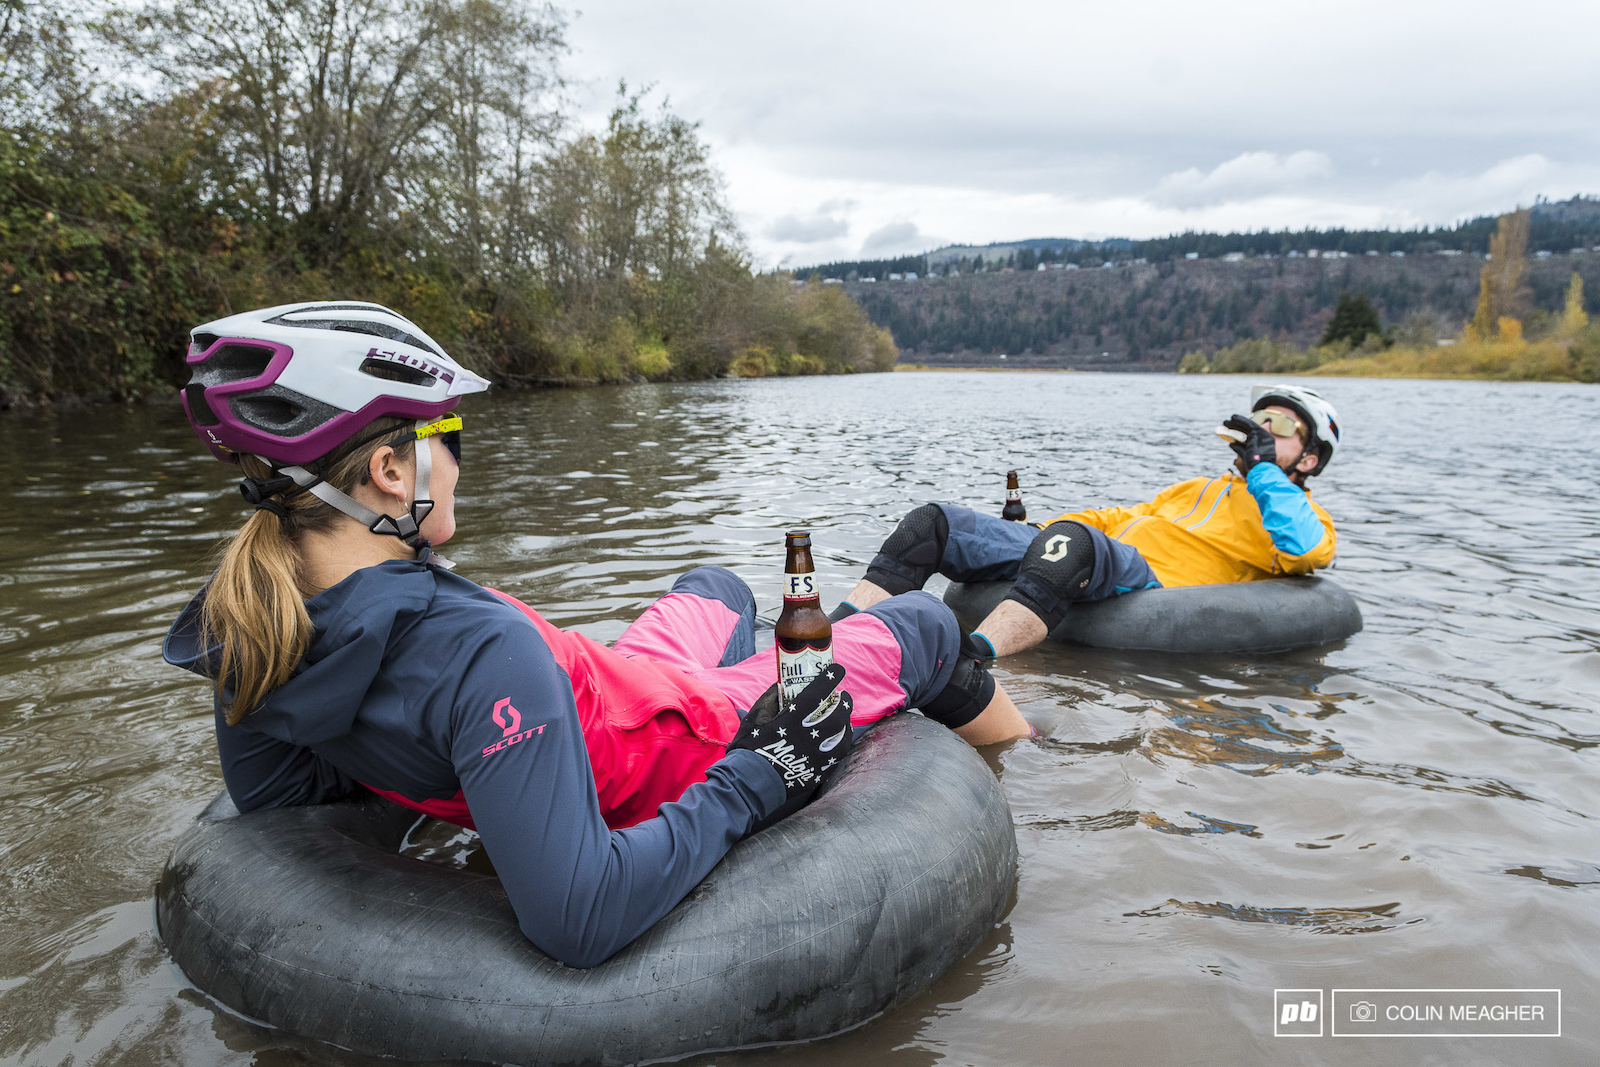 Nikki Hollatz and Justin Fernandes putting Scott s winter clothing to the test with a November float in the Hood River.